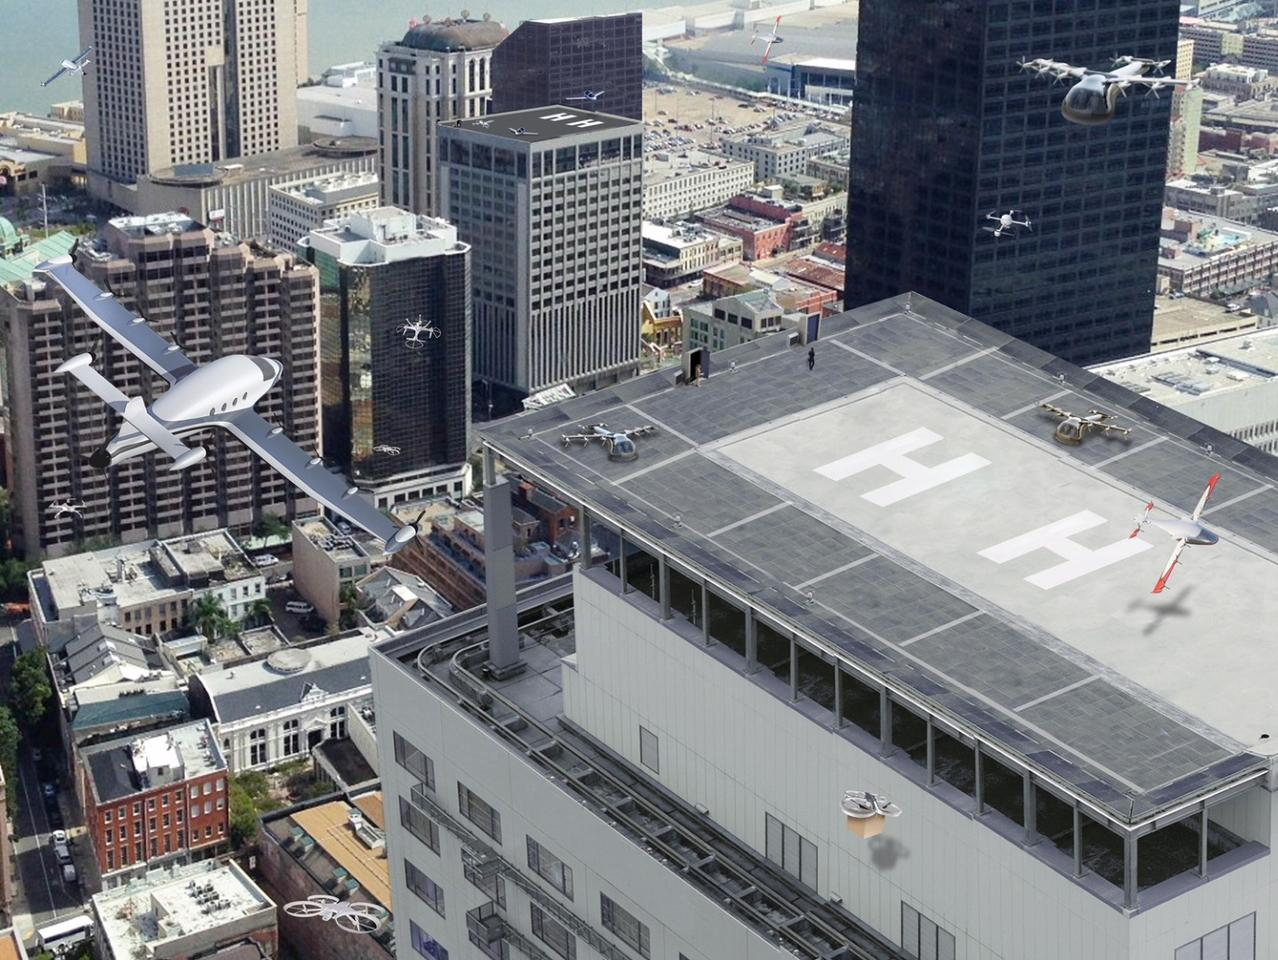 Not be held down by its continuing troubles here on solid ground, Uber is pushing ahead with its flying taxi ambitions